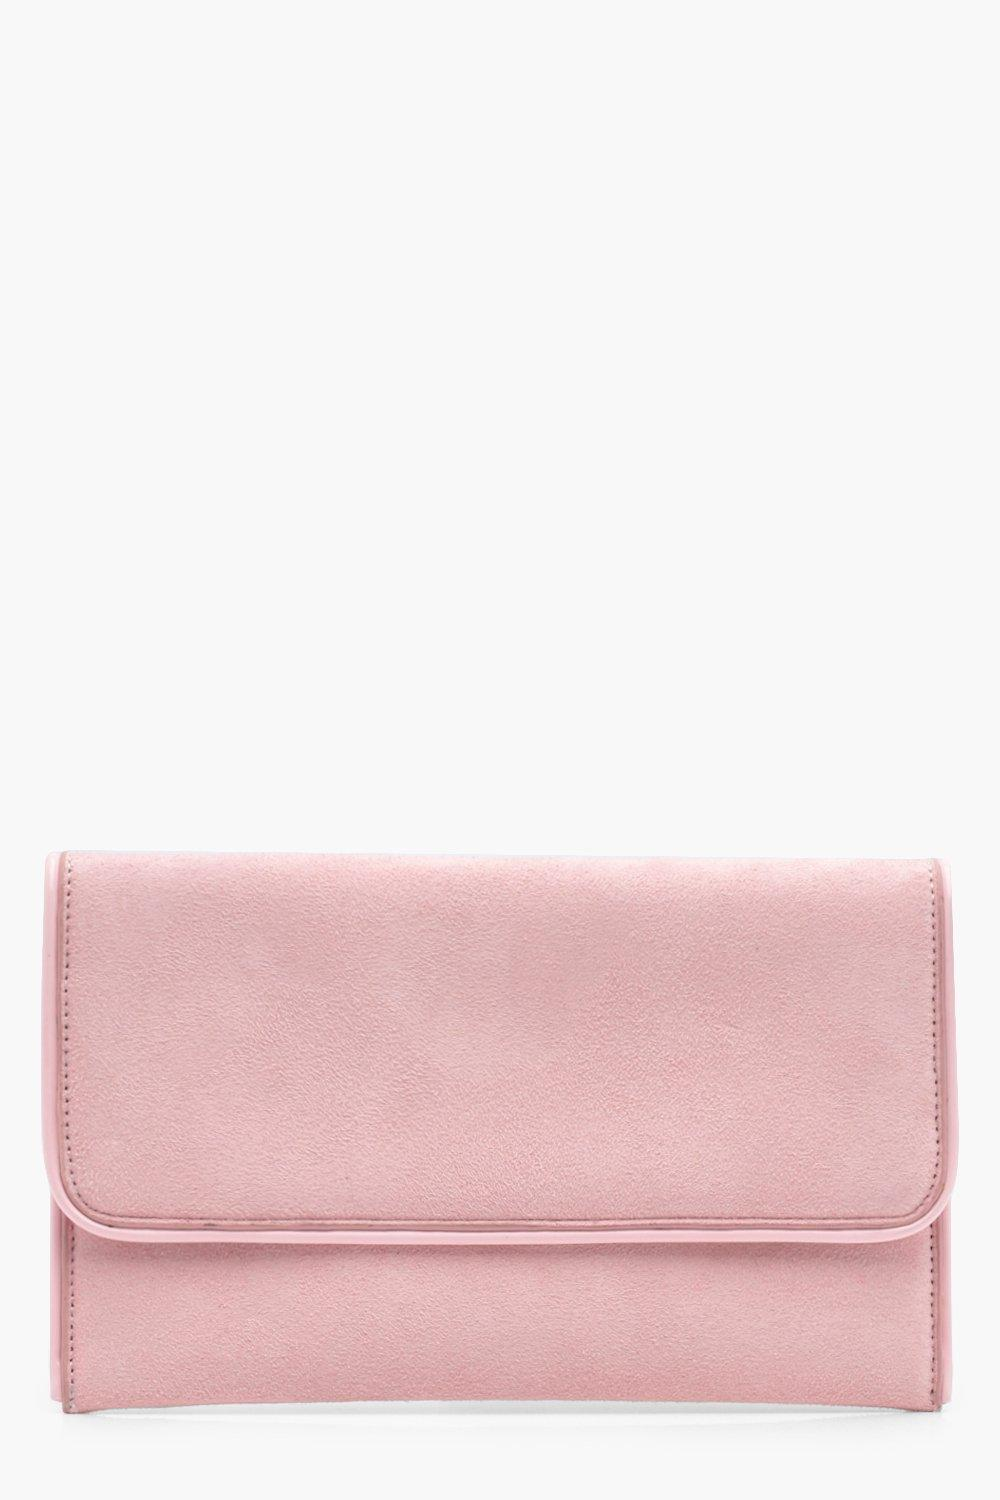 Piped Edge Suedette Clutch - nude - Emma Piped Edg